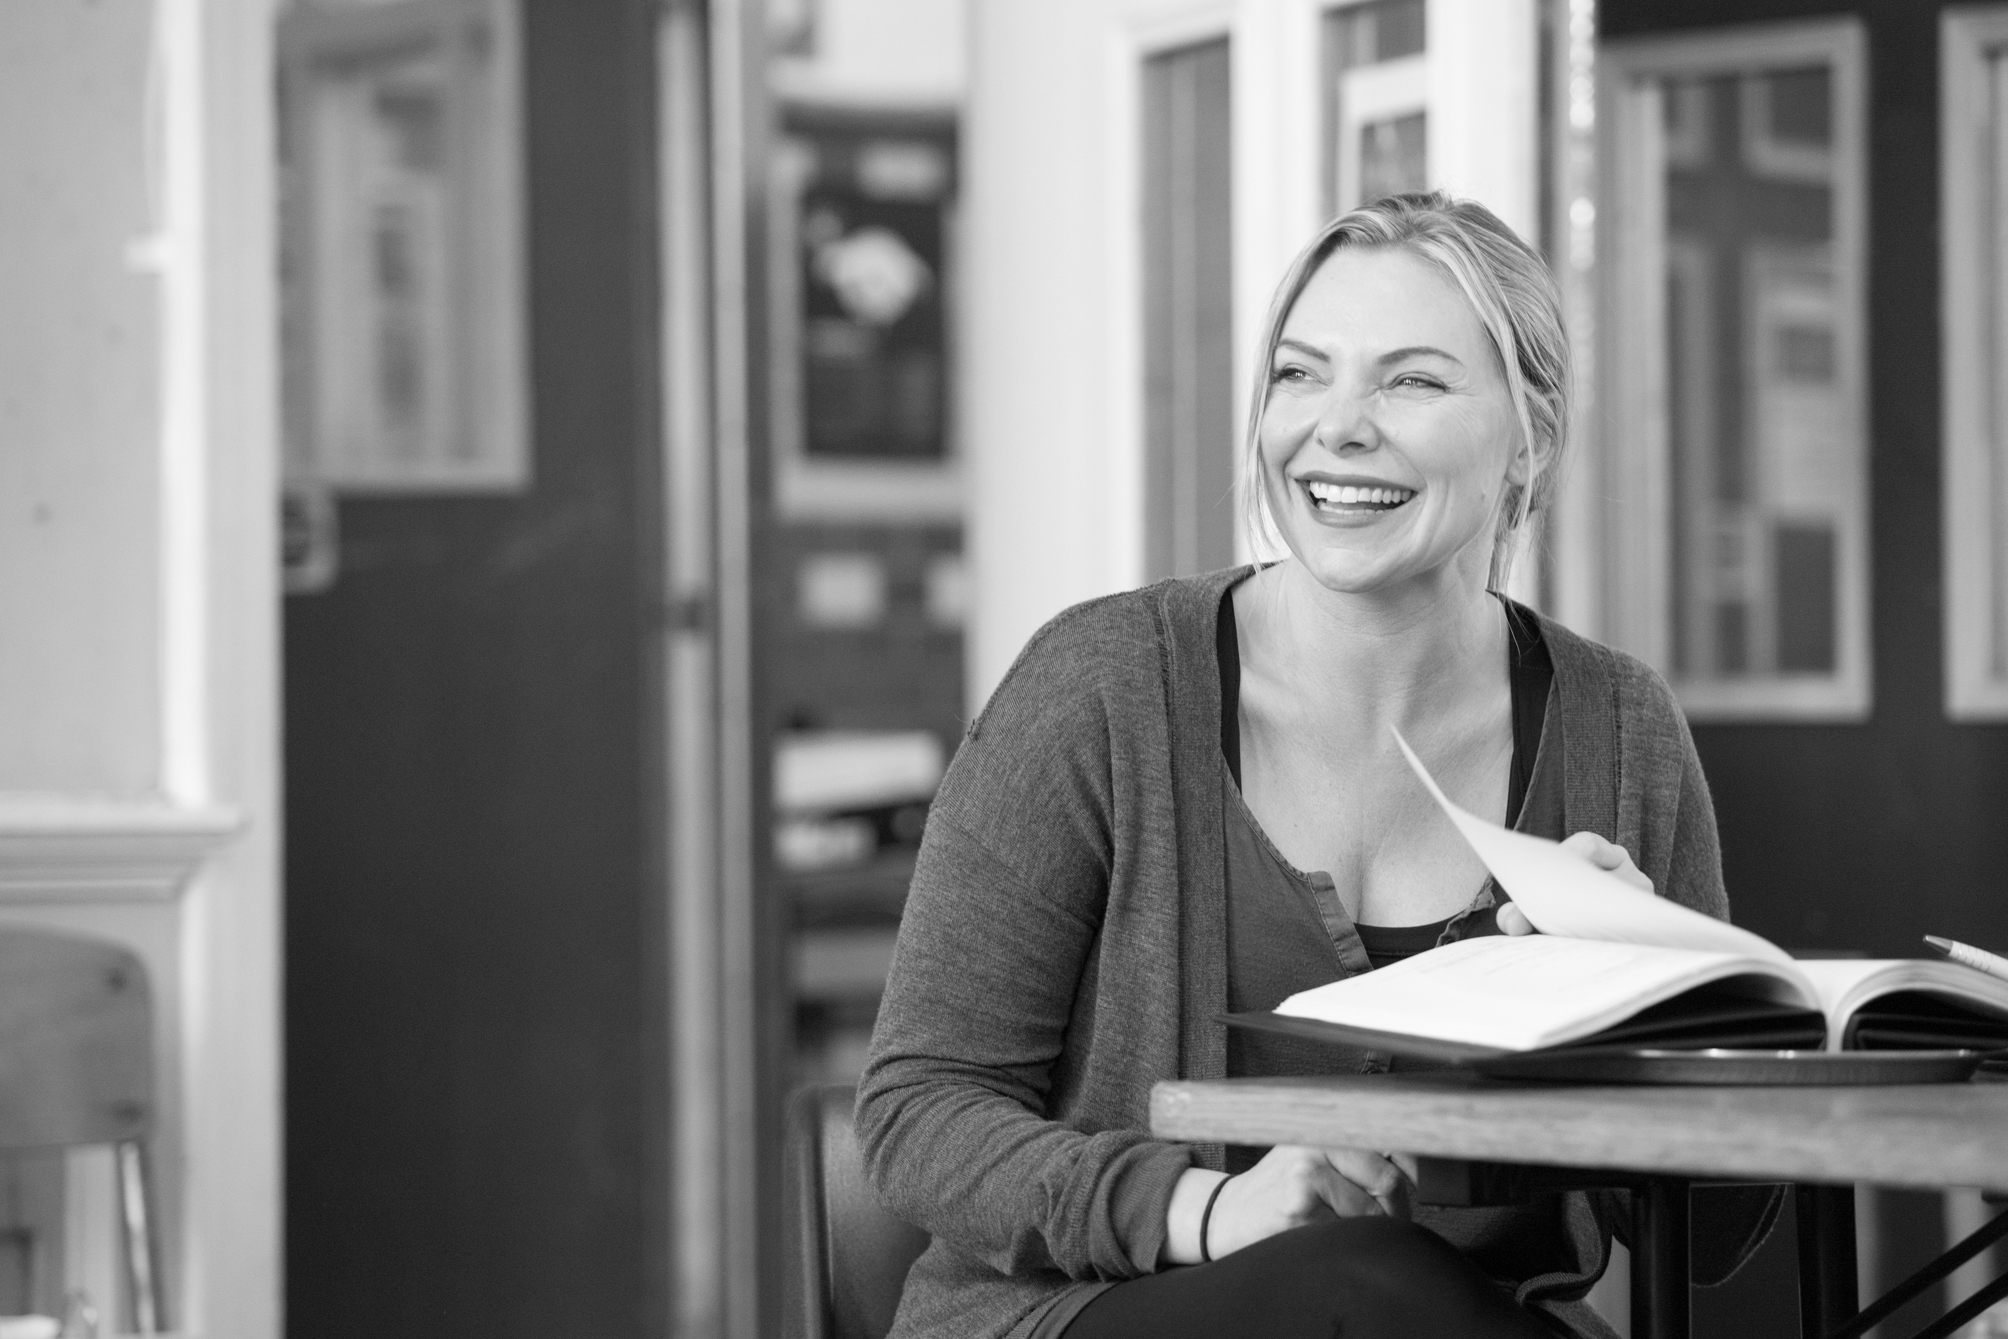 sam-womack-in-addams-family-rehearsals_credit-craig-sugden-3